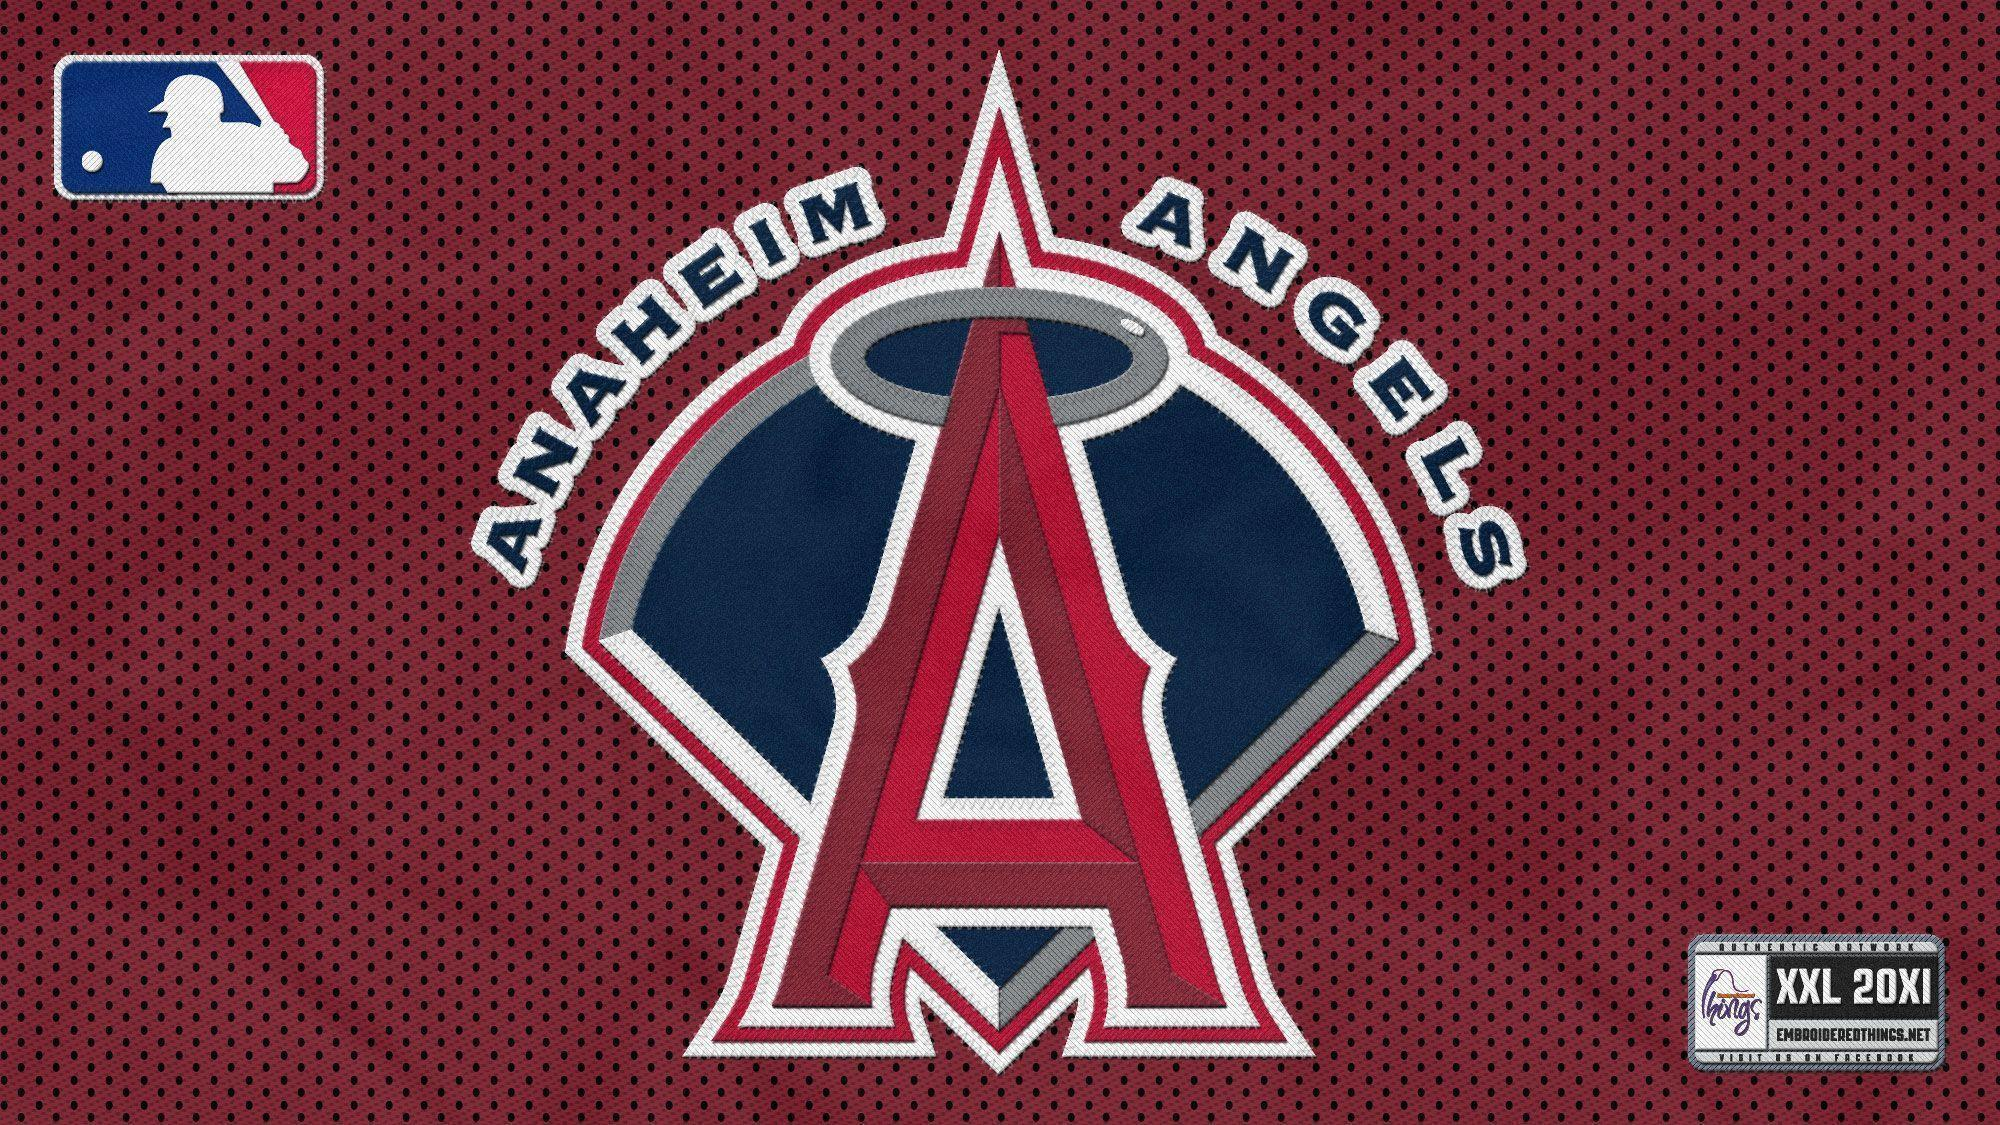 ANAHEIM ANGELS baseball mlb fw wallpapers